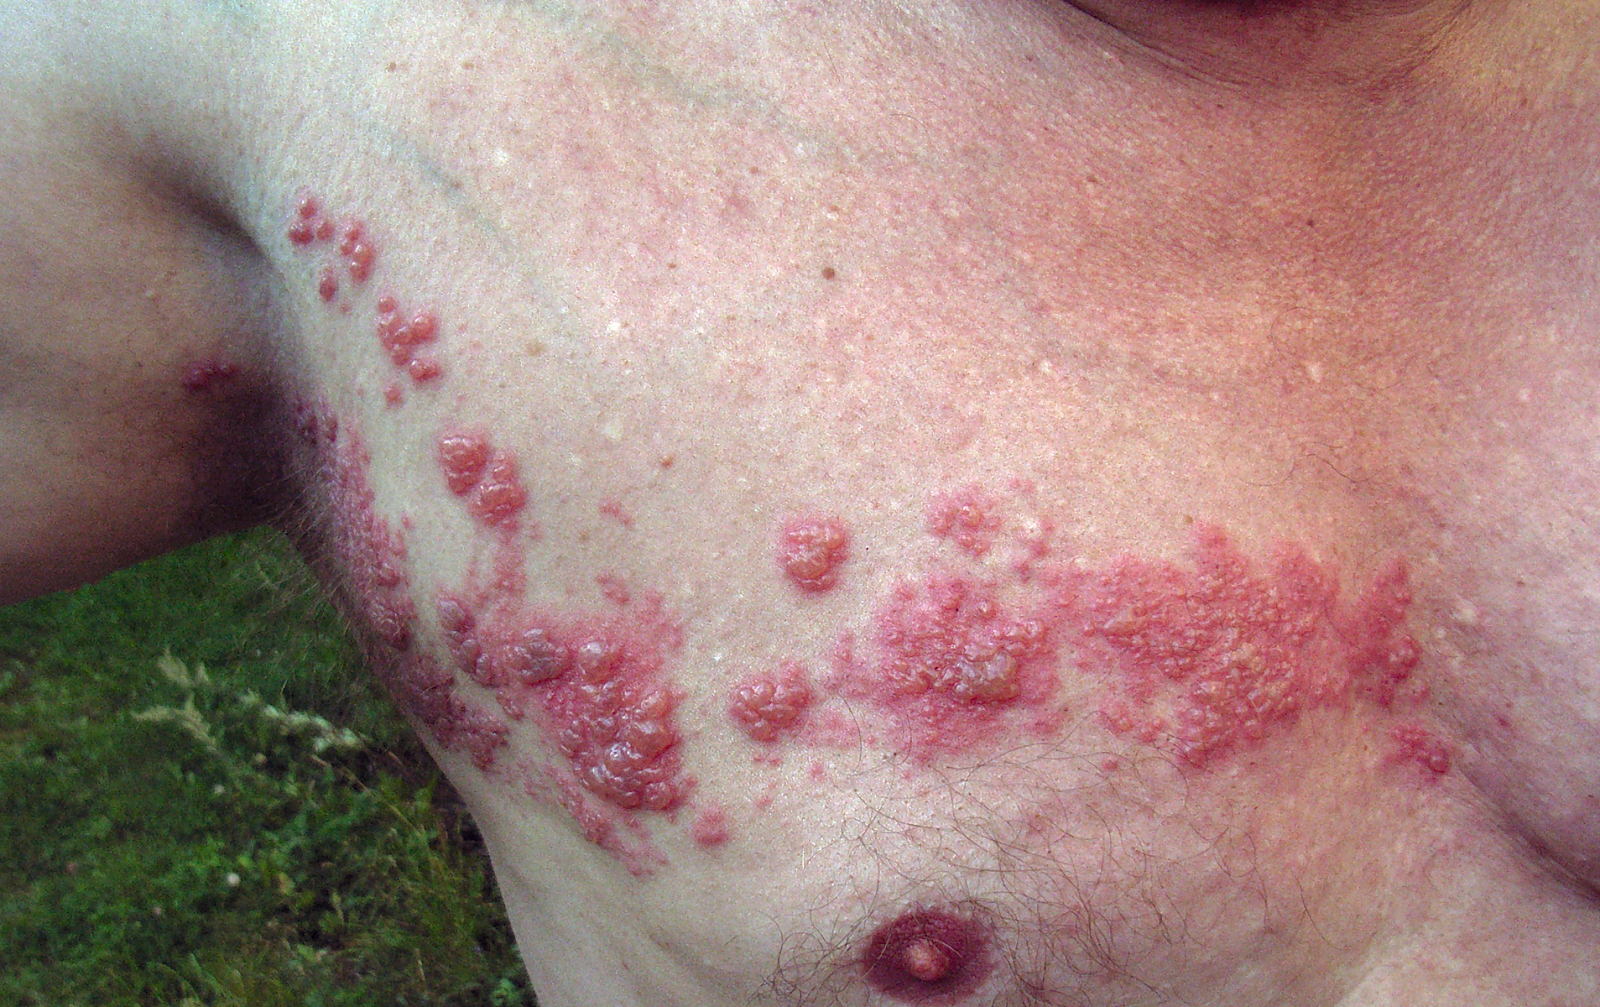 https://upload.wikimedia.org/wikipedia/commons/1/19/Herpes_zoster_chest.png